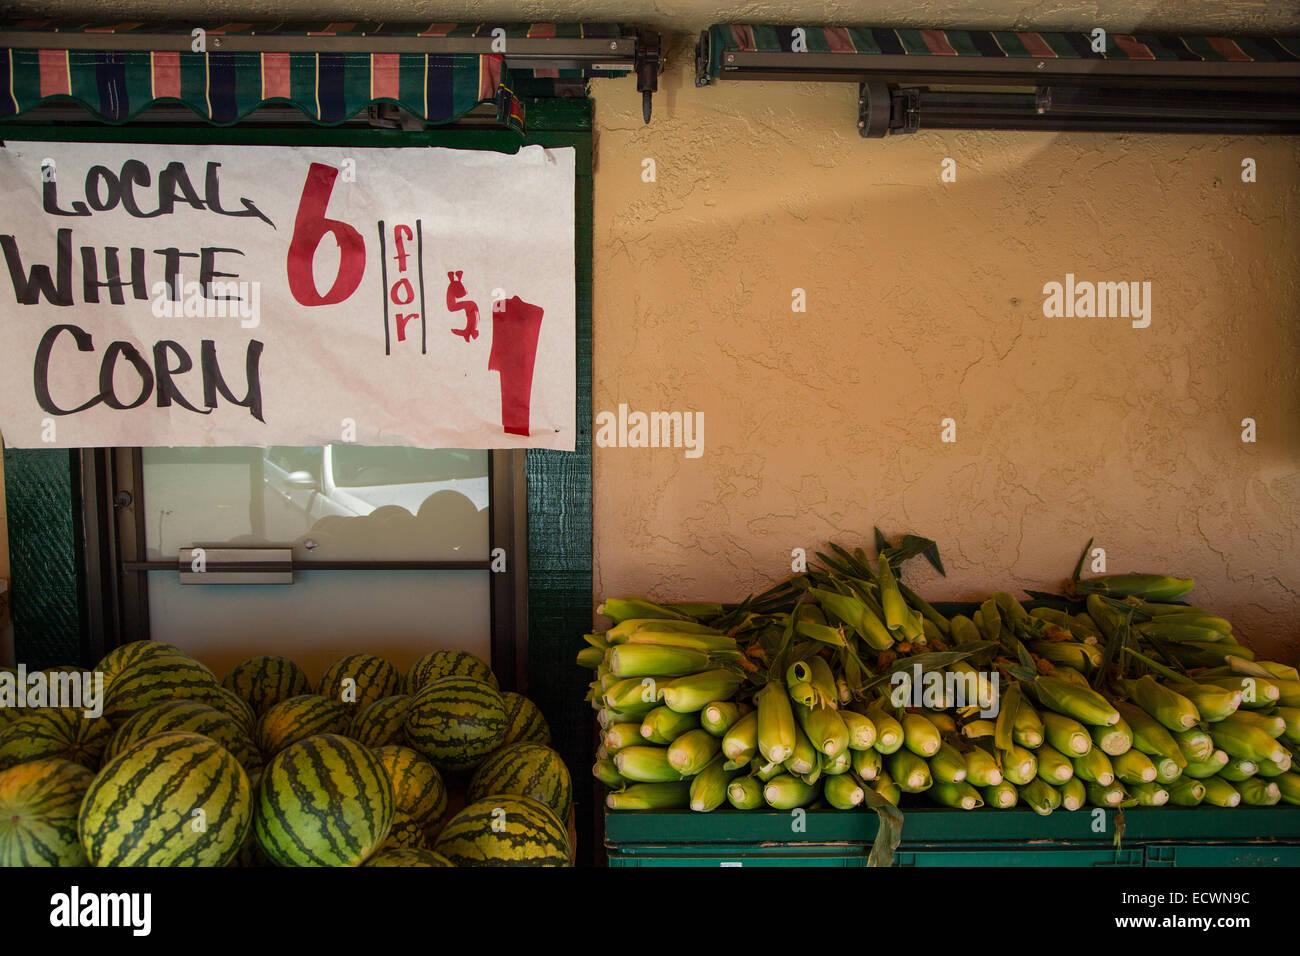 Local corn and watermelons for sale at local produce market - Stock Image